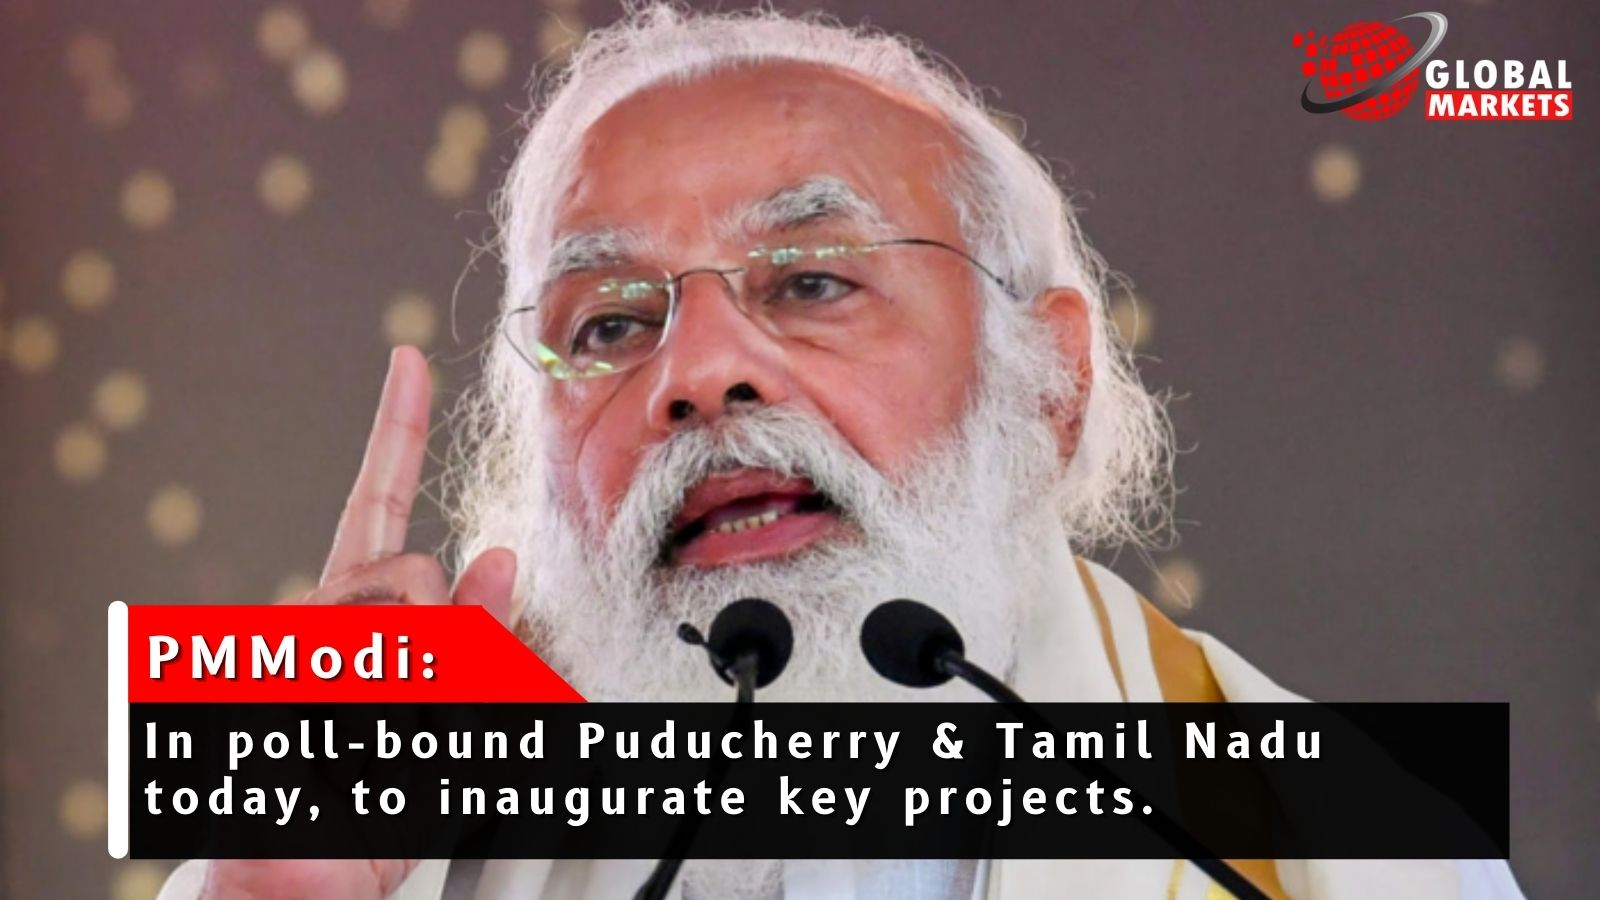 Prime Minister Narendra Modi to launch key projects in Puducherry and Tamil Naidu.